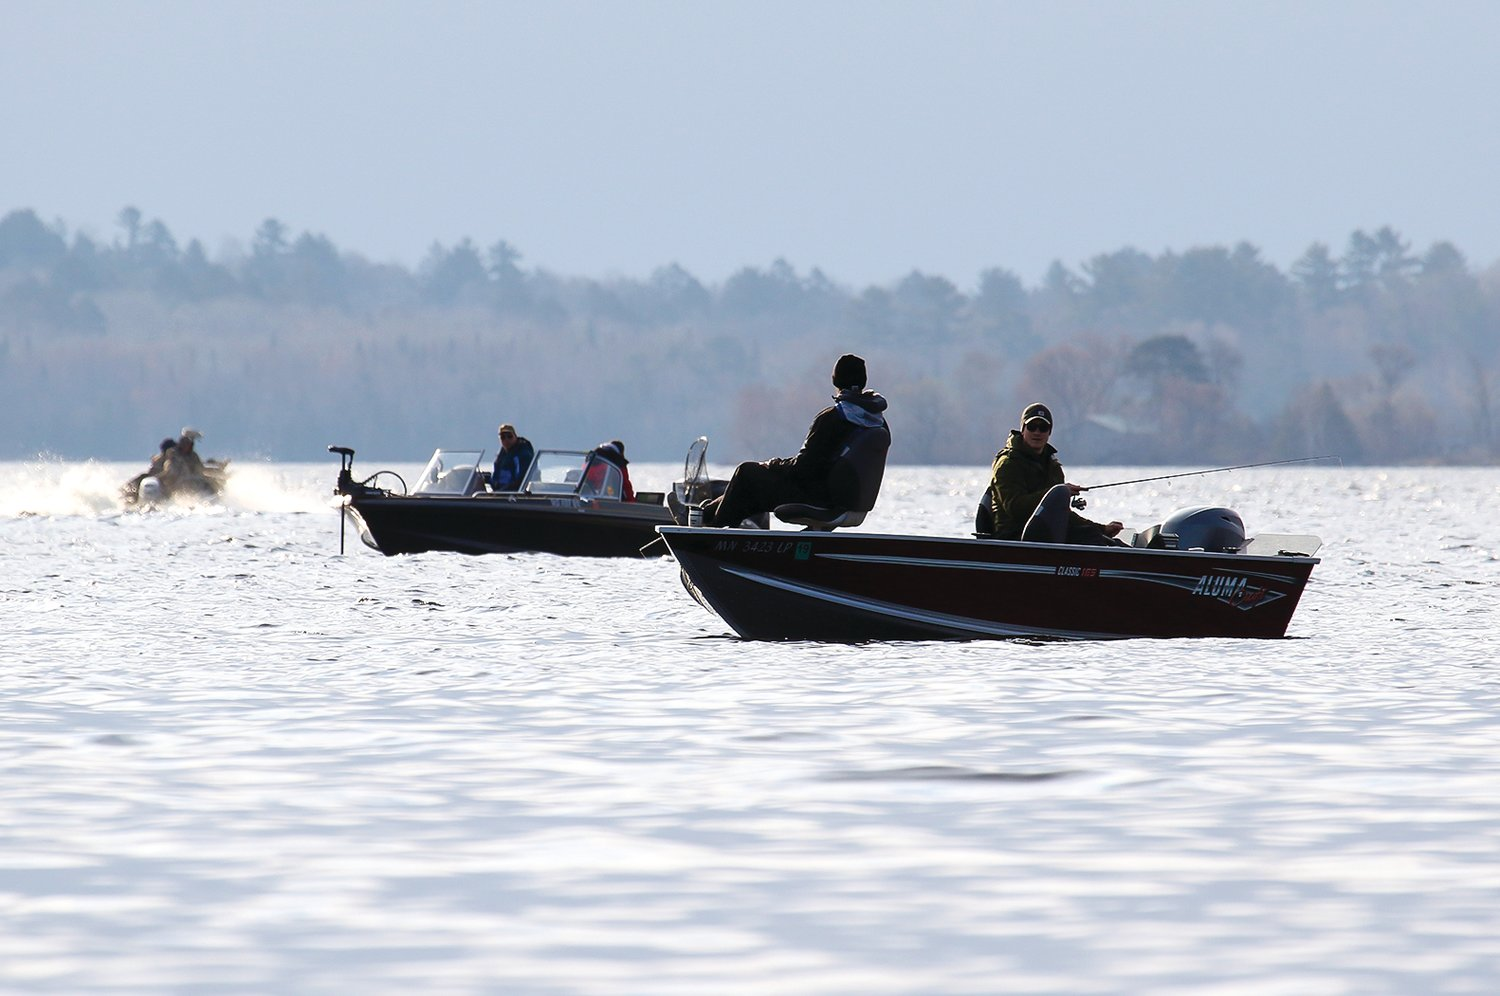 With increased fishing pressure on Lake Vermilion, local organizations are pushing voluntary 